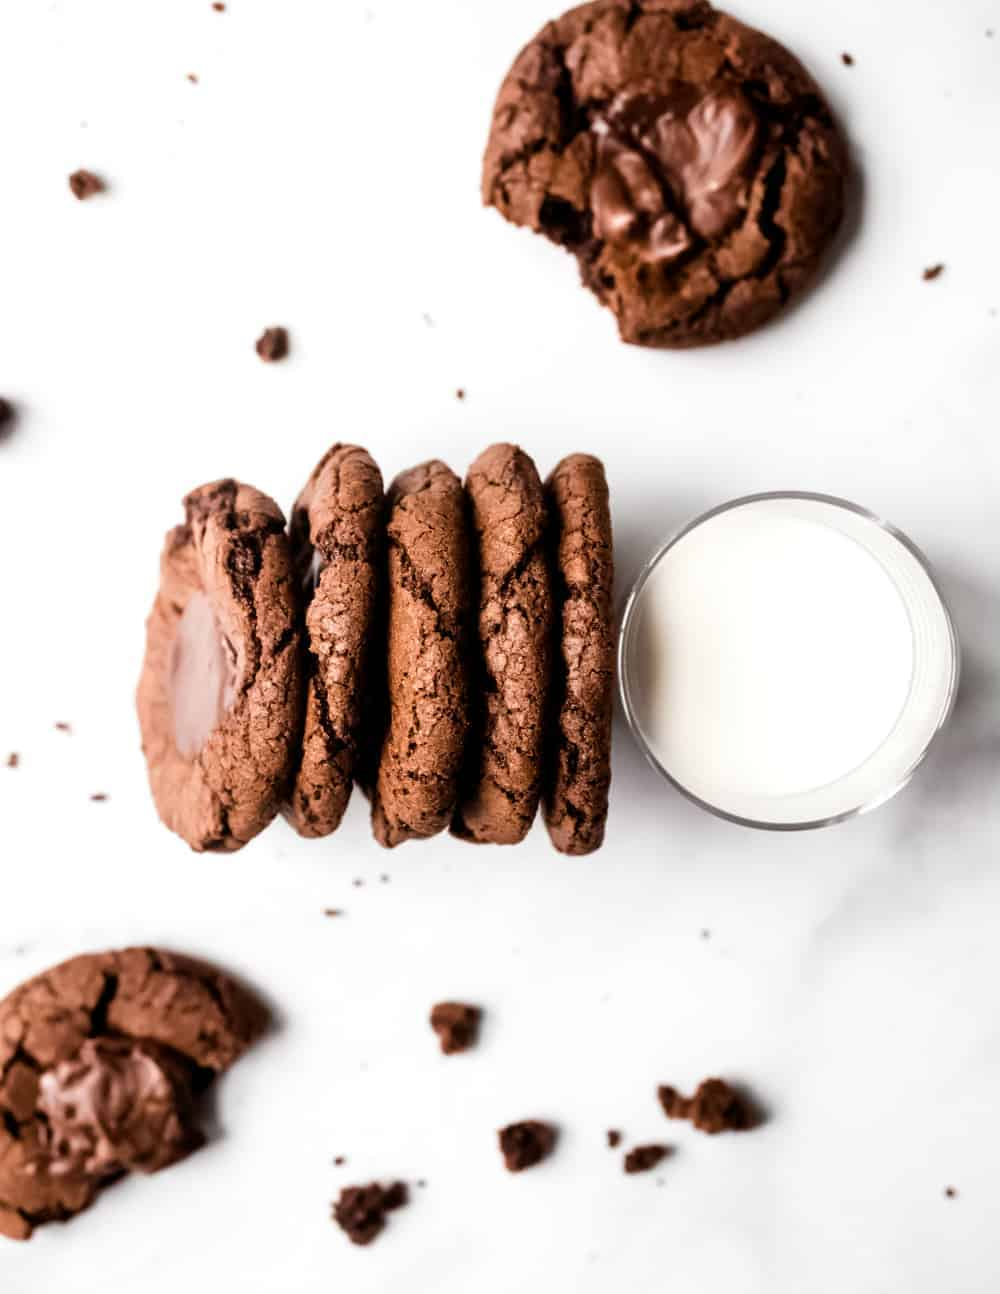 5 Mint chocolate cookies lined up against a glass of milk